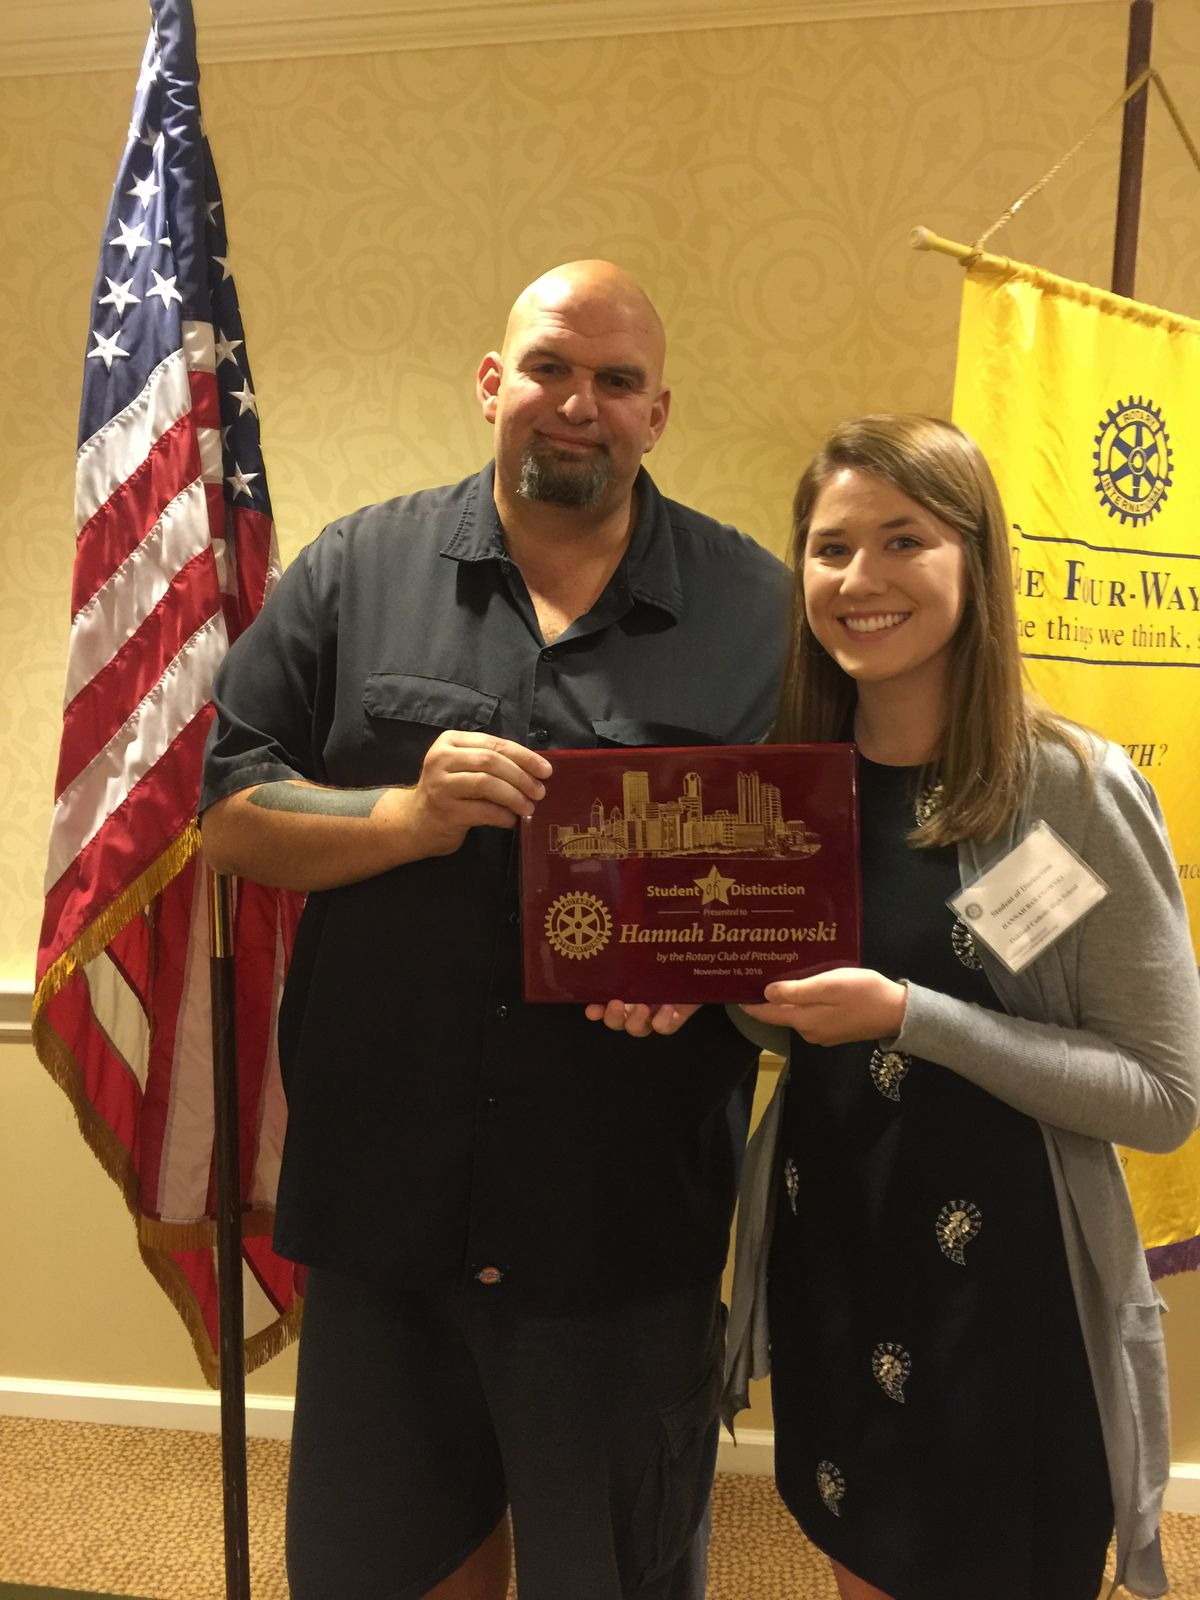 Hannah Baranowski, '17, Rotary Club of Pittsburgh's Student of Distinction